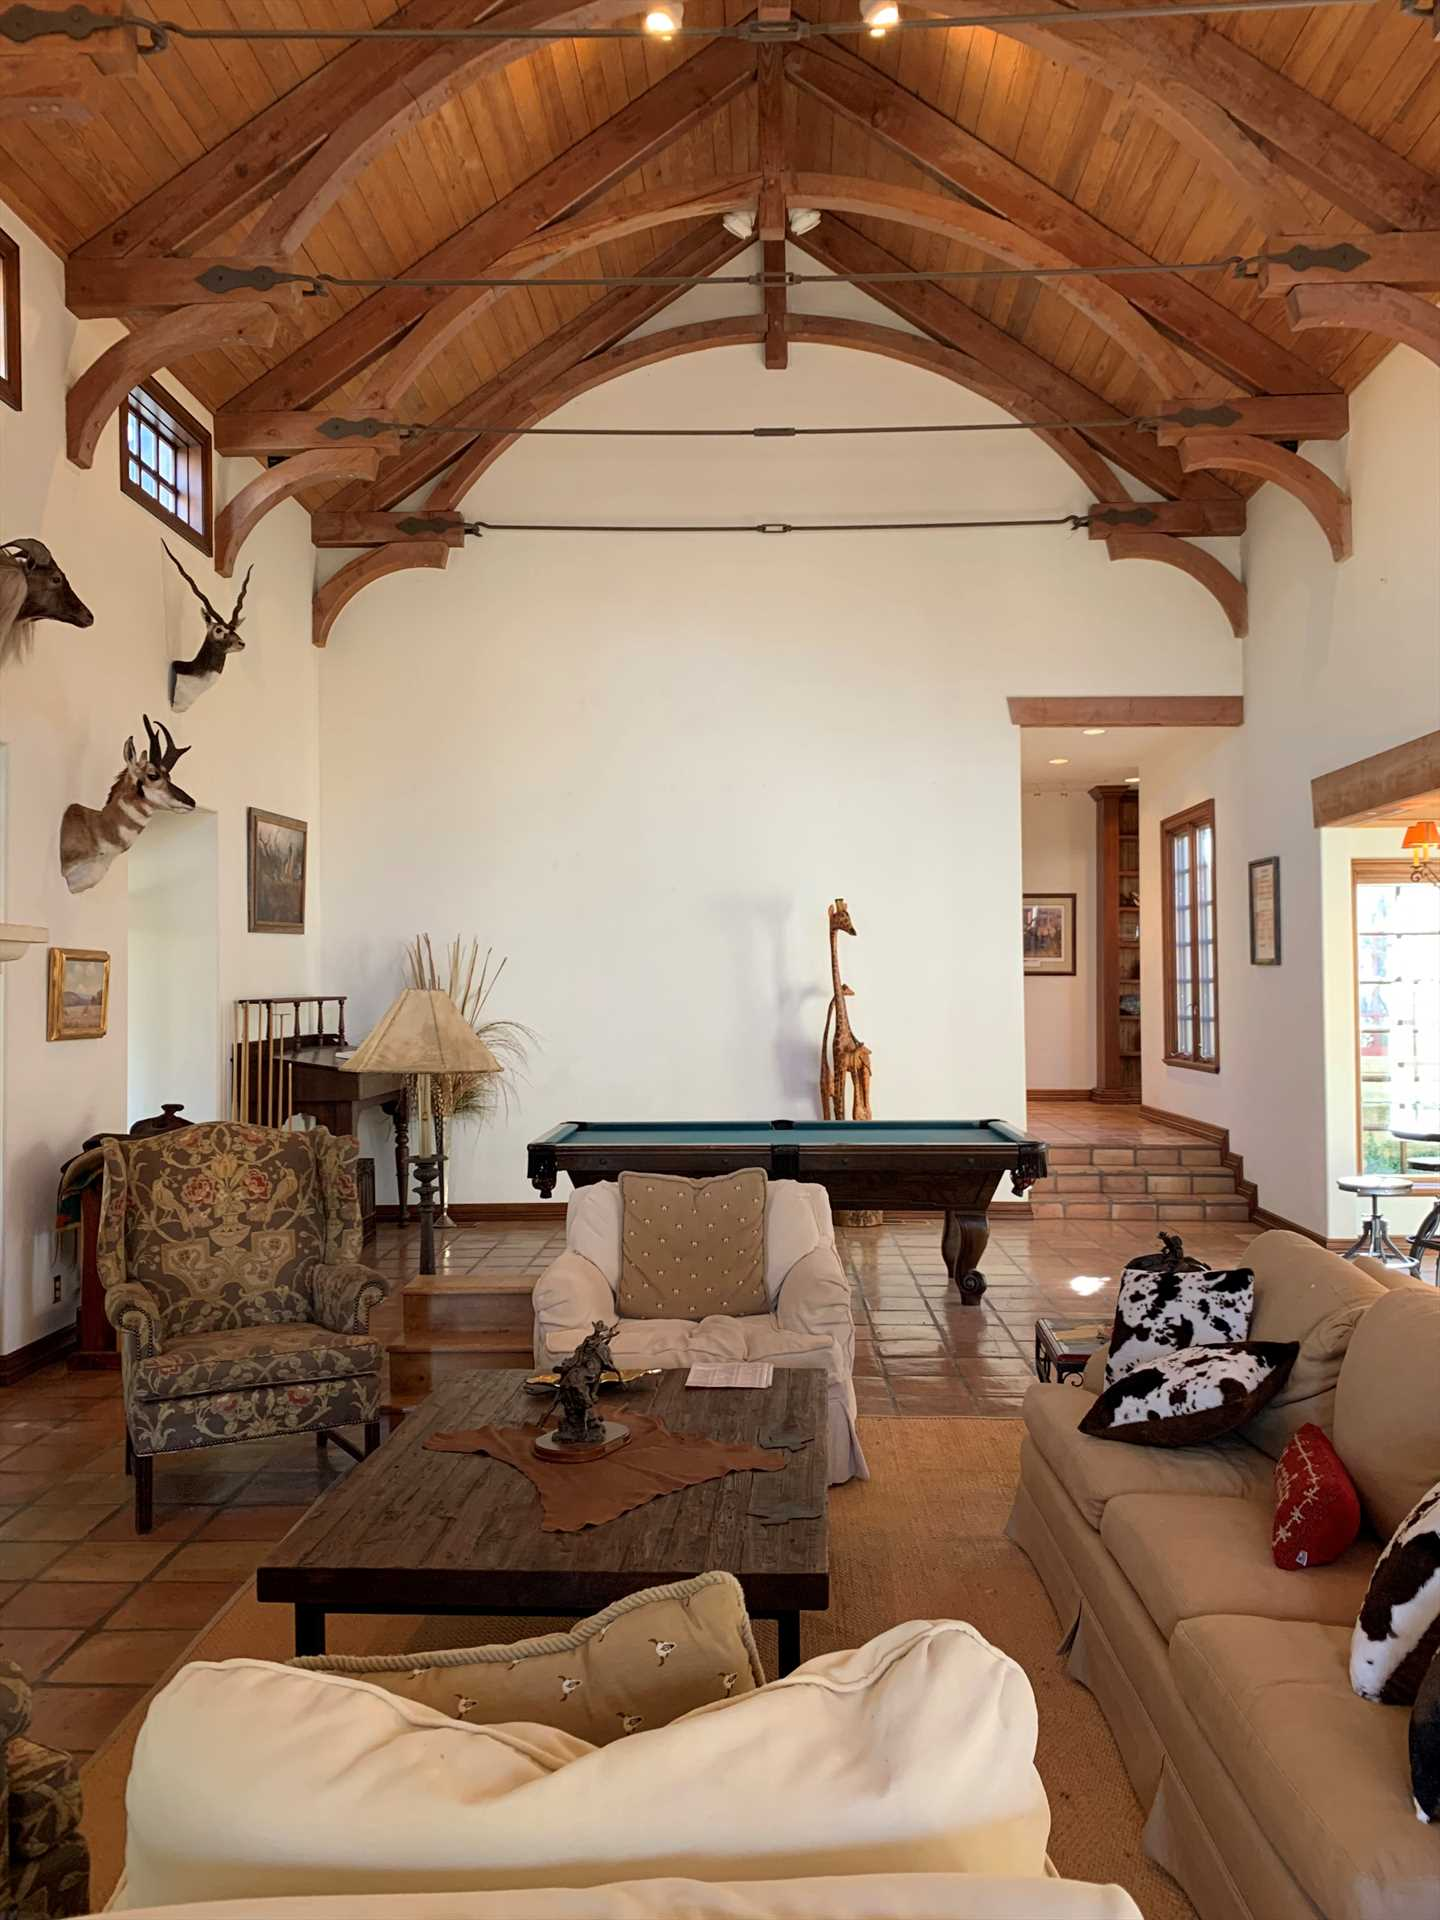 High ceilings and gorgeous woodwork and decor give the Homestead a stately and almost castle-like personality.